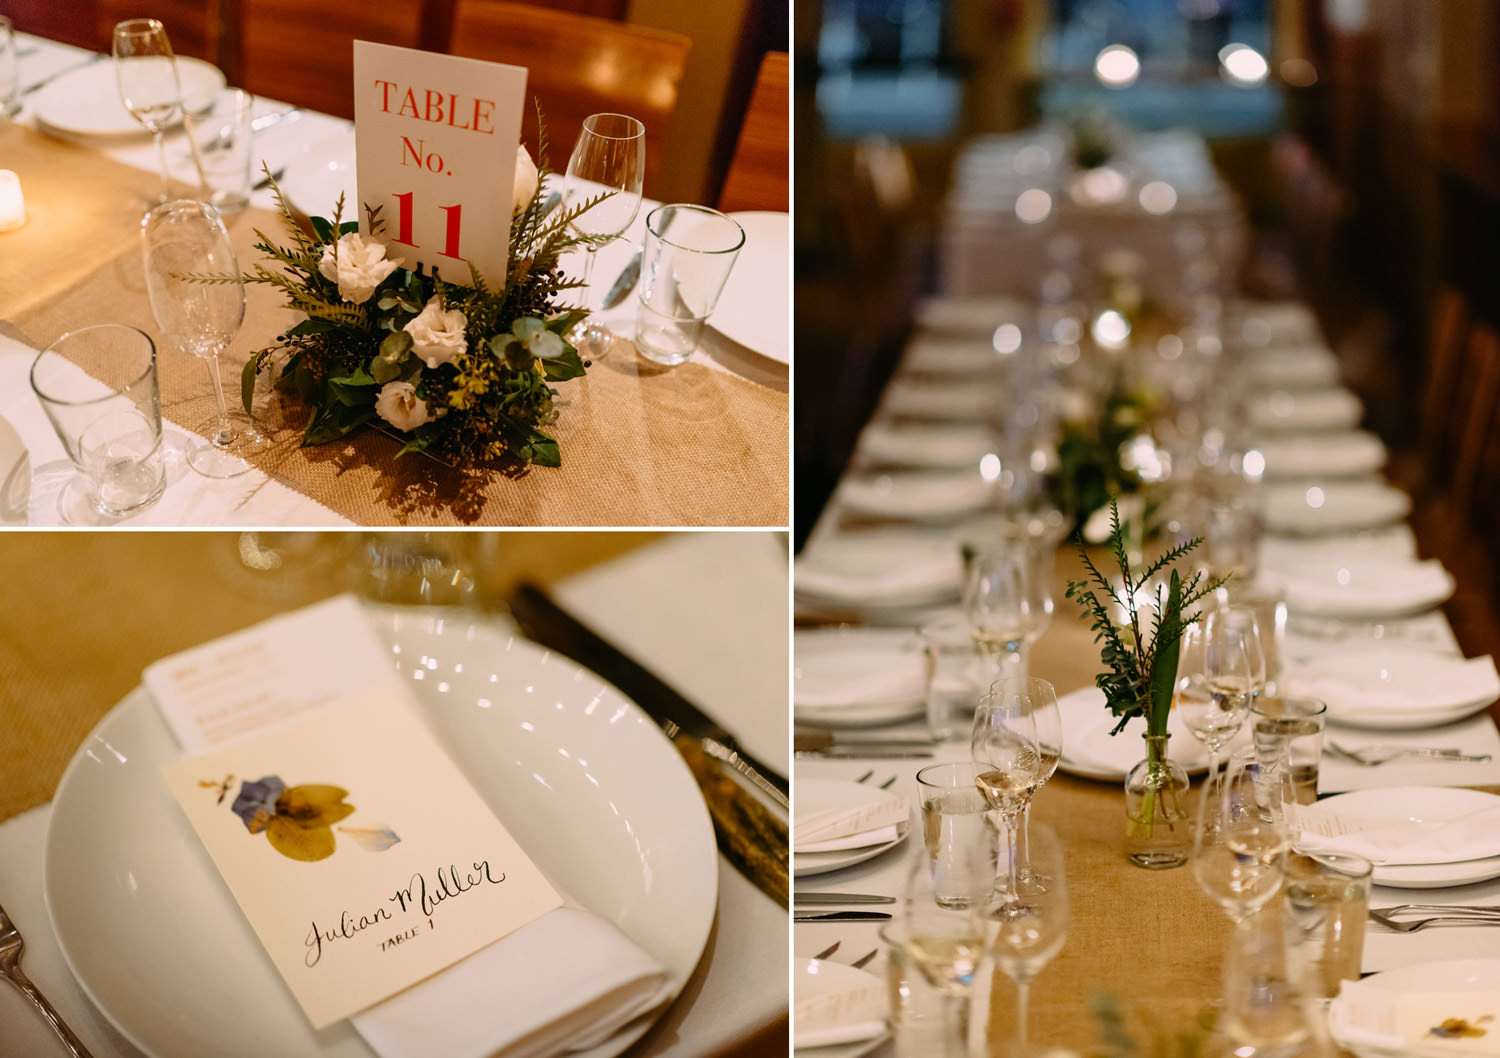 amazing table decorations at new york city winery wedding- Luke Sezeck